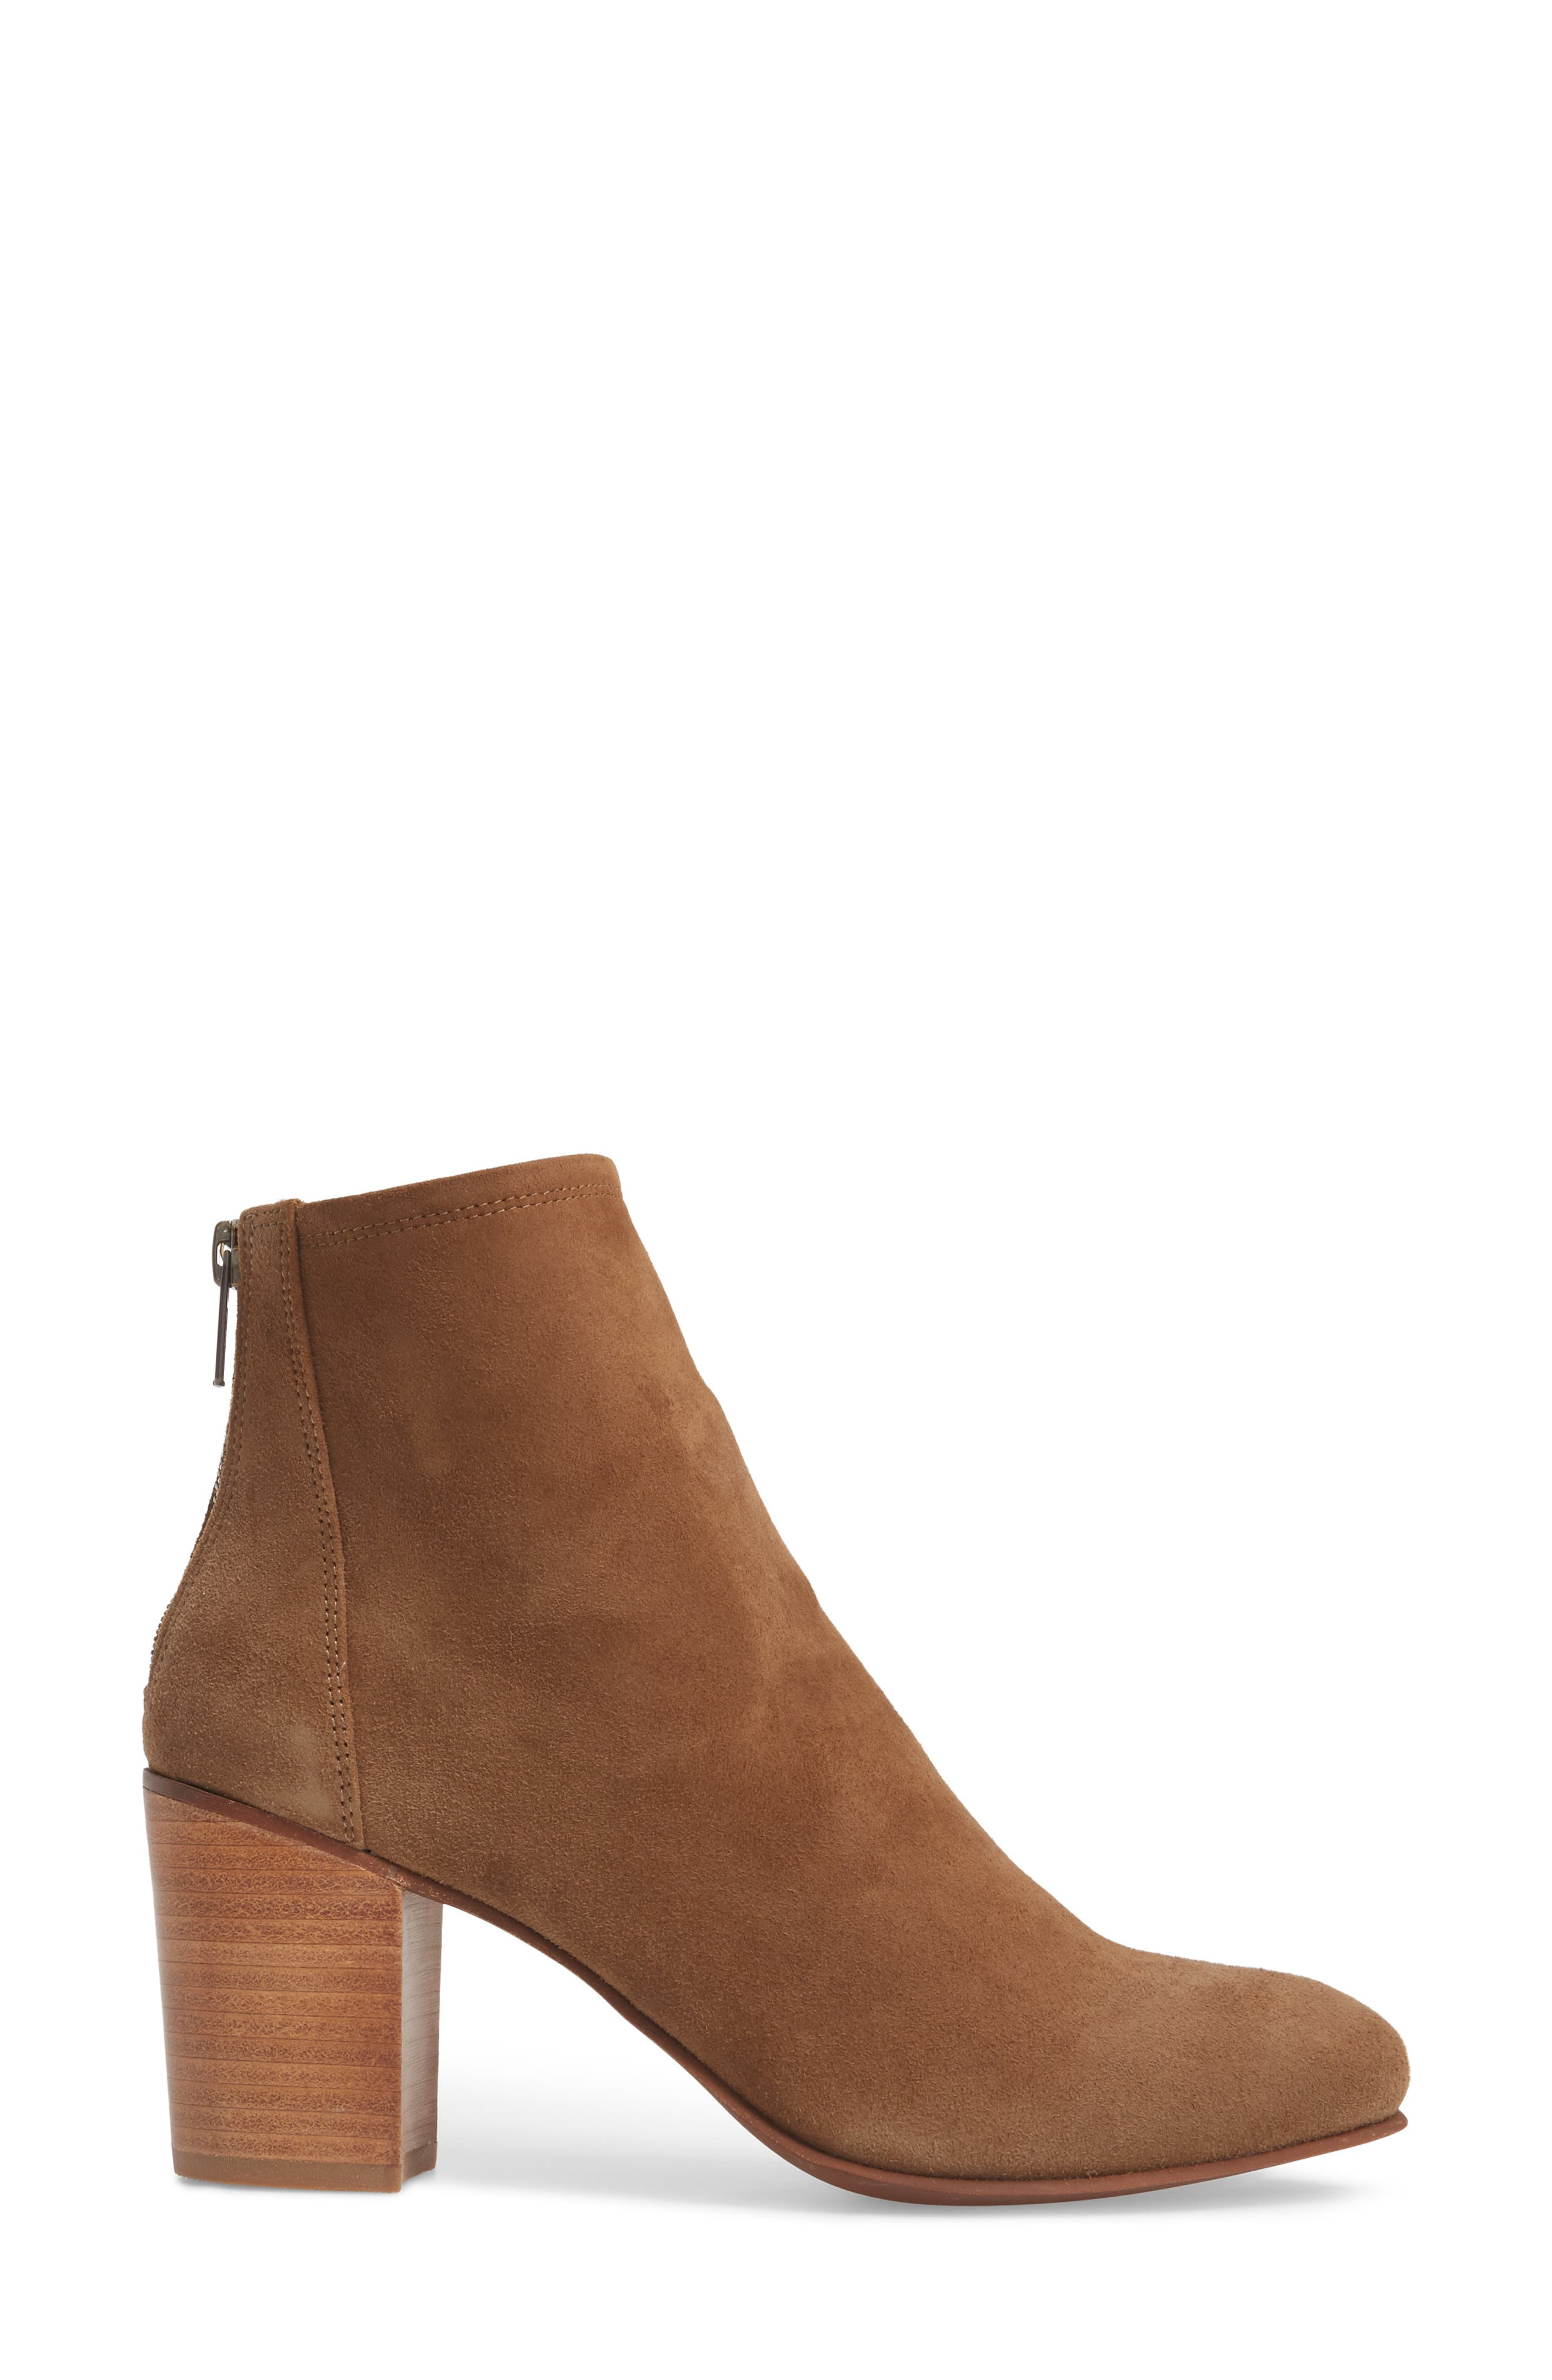 Tawny Bootie,                             Alternate thumbnail 3, color,                             Khaki Suede